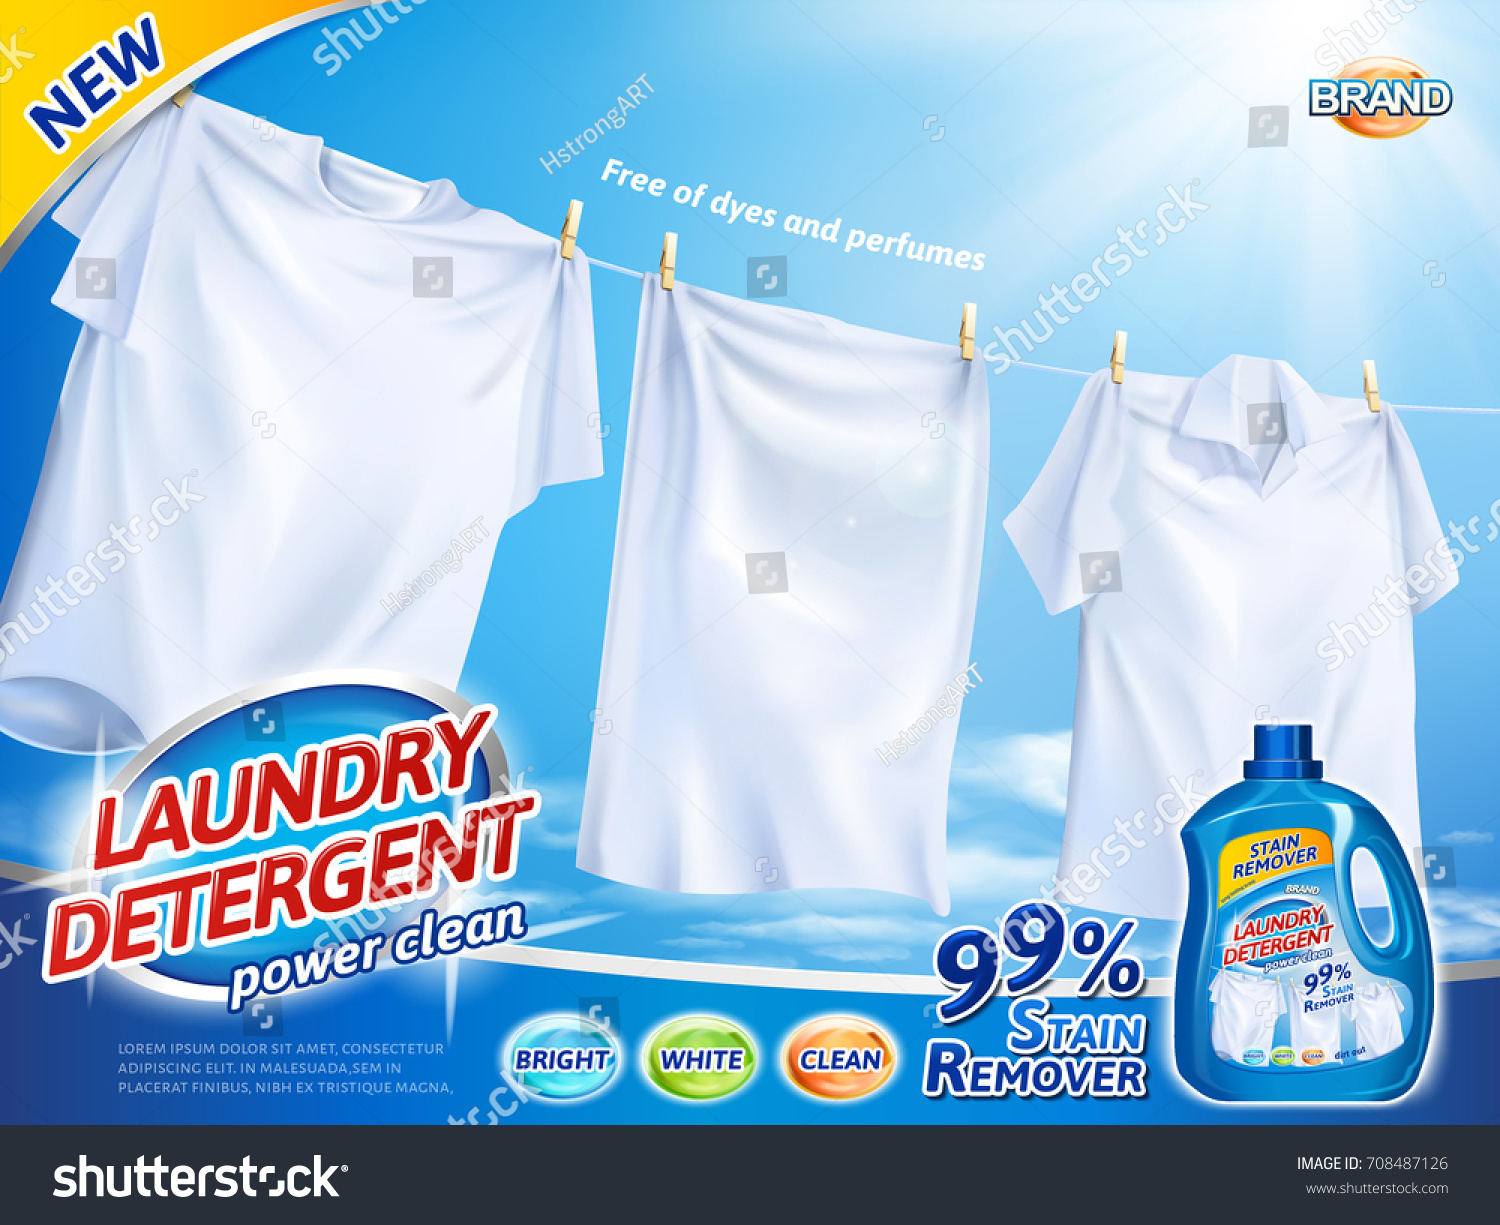 laundry detergent ads bright white clothes stock vector 708487126 shutterstock. Black Bedroom Furniture Sets. Home Design Ideas